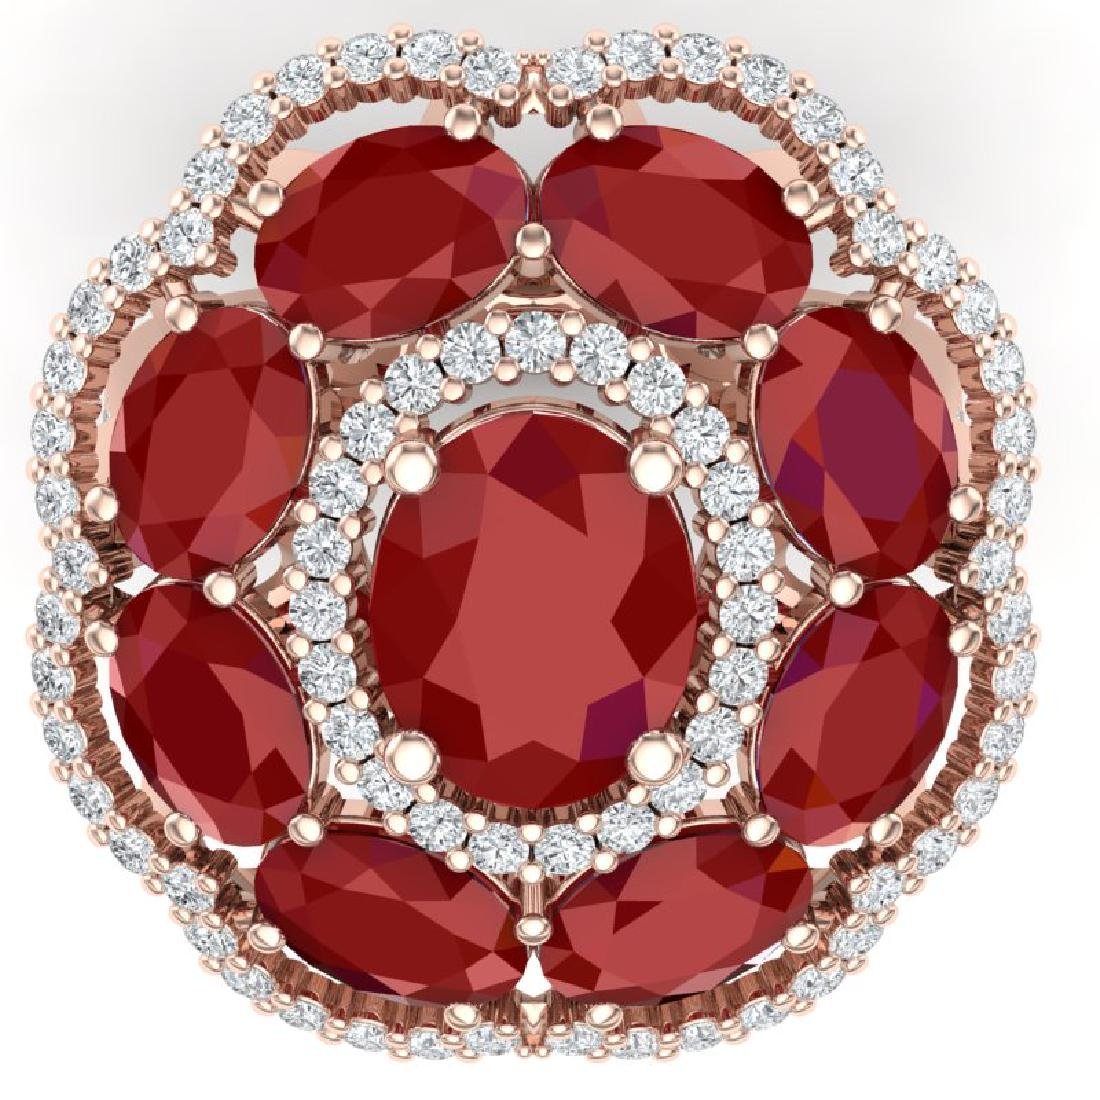 14.4 CTW Royalty Designer Ruby & VS Diamond Ring 18K - 2